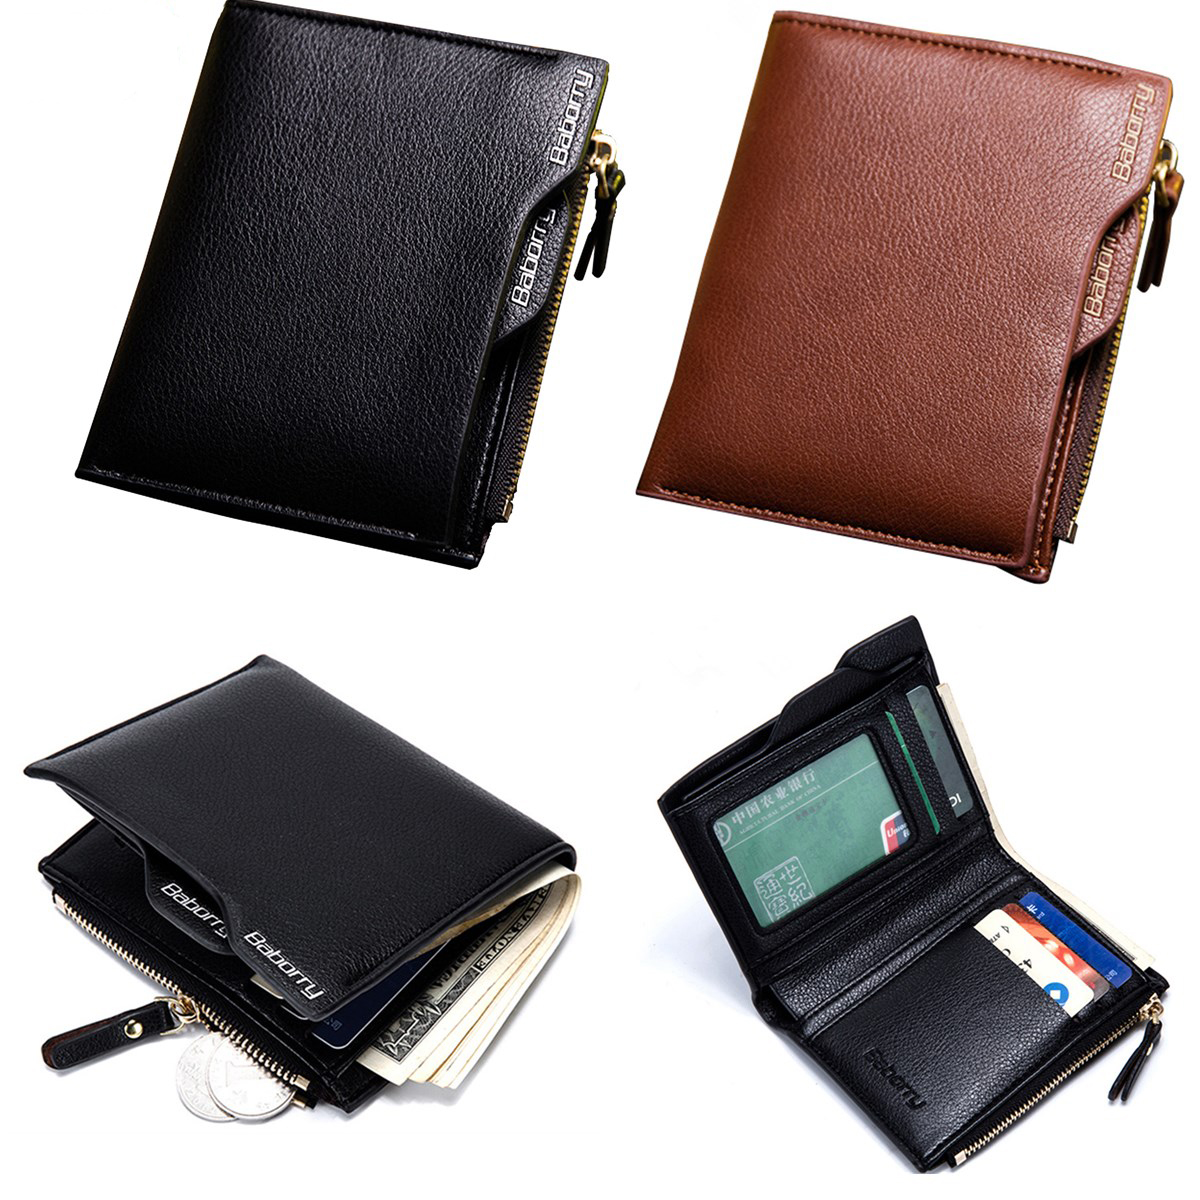 Specification: Material PU Leather Lining Polyester Color Black, Coffee Size 10 x 2 x 12cm/3.94 x 0.79 x 4.72inch Weight Approx.80g Features: Stylish and practical, easy to match different outfits. RFID blocking design, anti-theft and keep safe. It can ho #purse